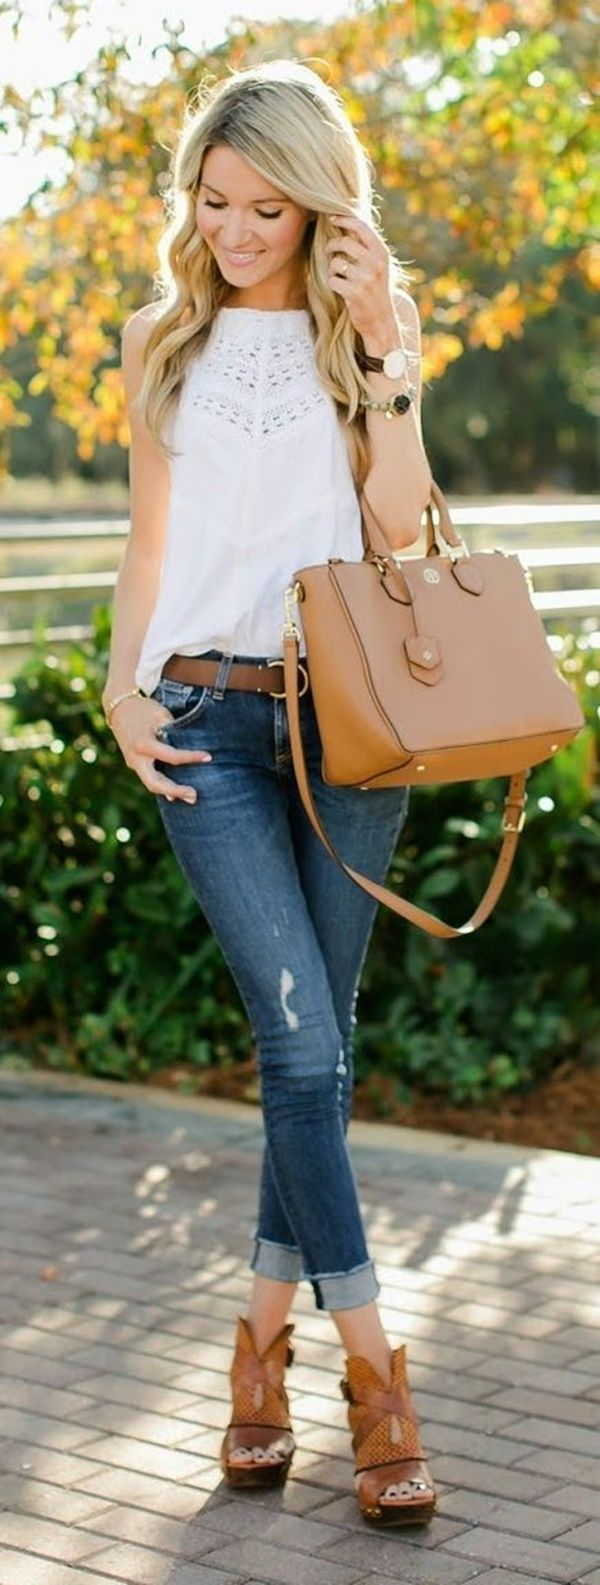 some new ways to style your favorite #skinny #jeans this season, take inspiration from the following #outfit ideas